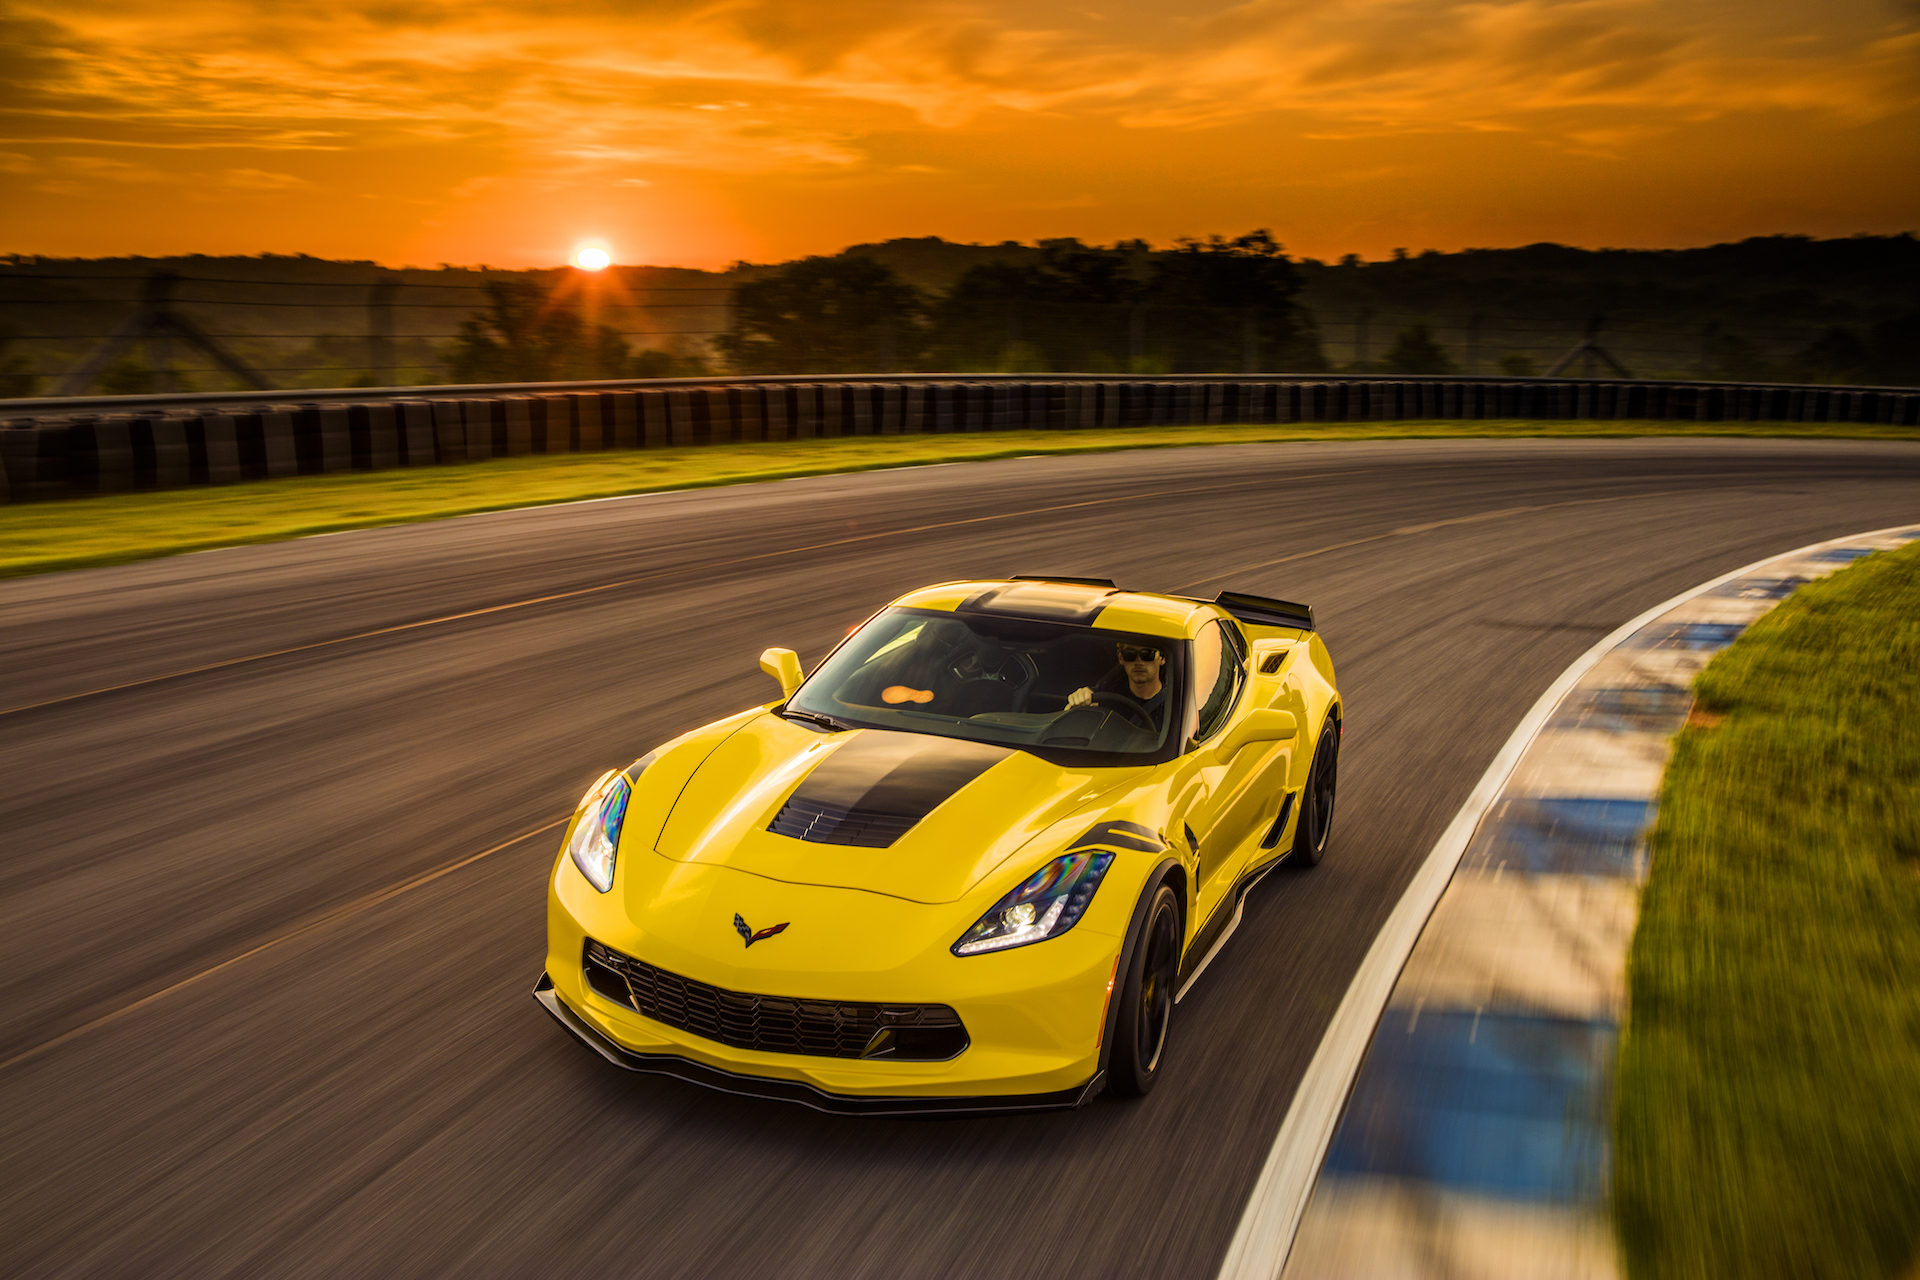 Chevrolet offering 10 percent off the Corvette in May